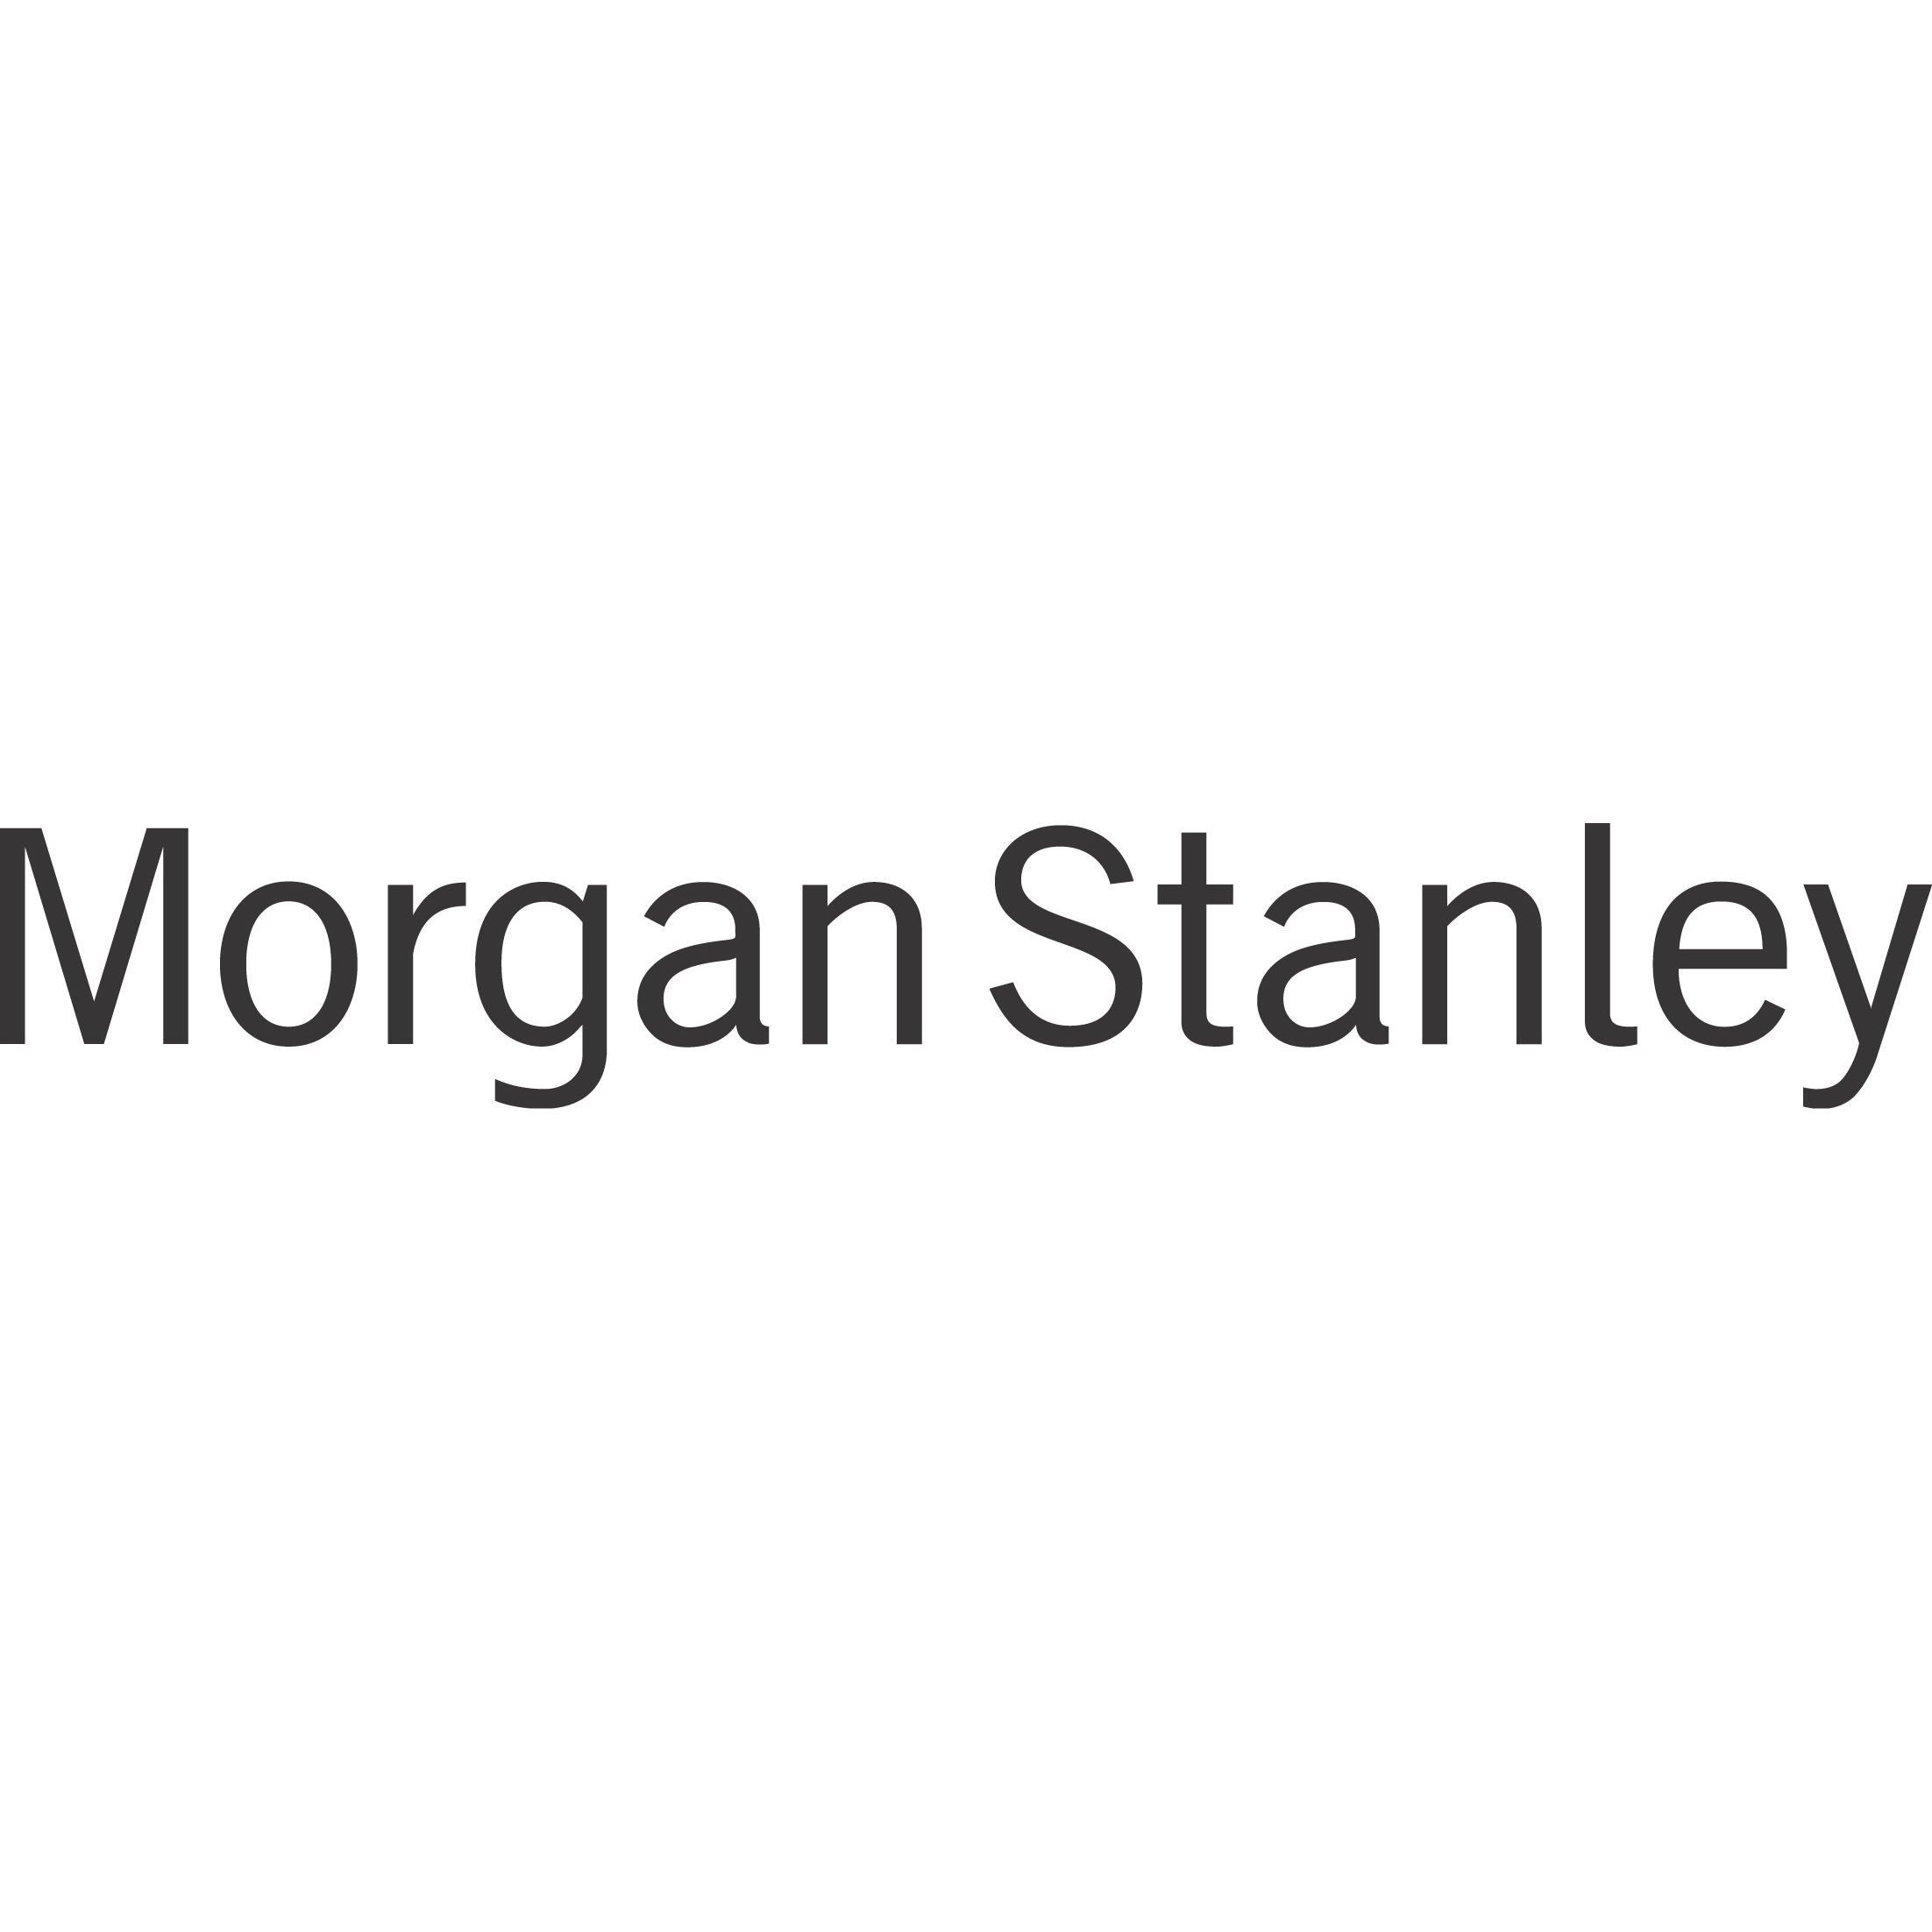 Kenneth Templeton - Morgan Stanley | Financial Advisor in Las Vegas,Nevada